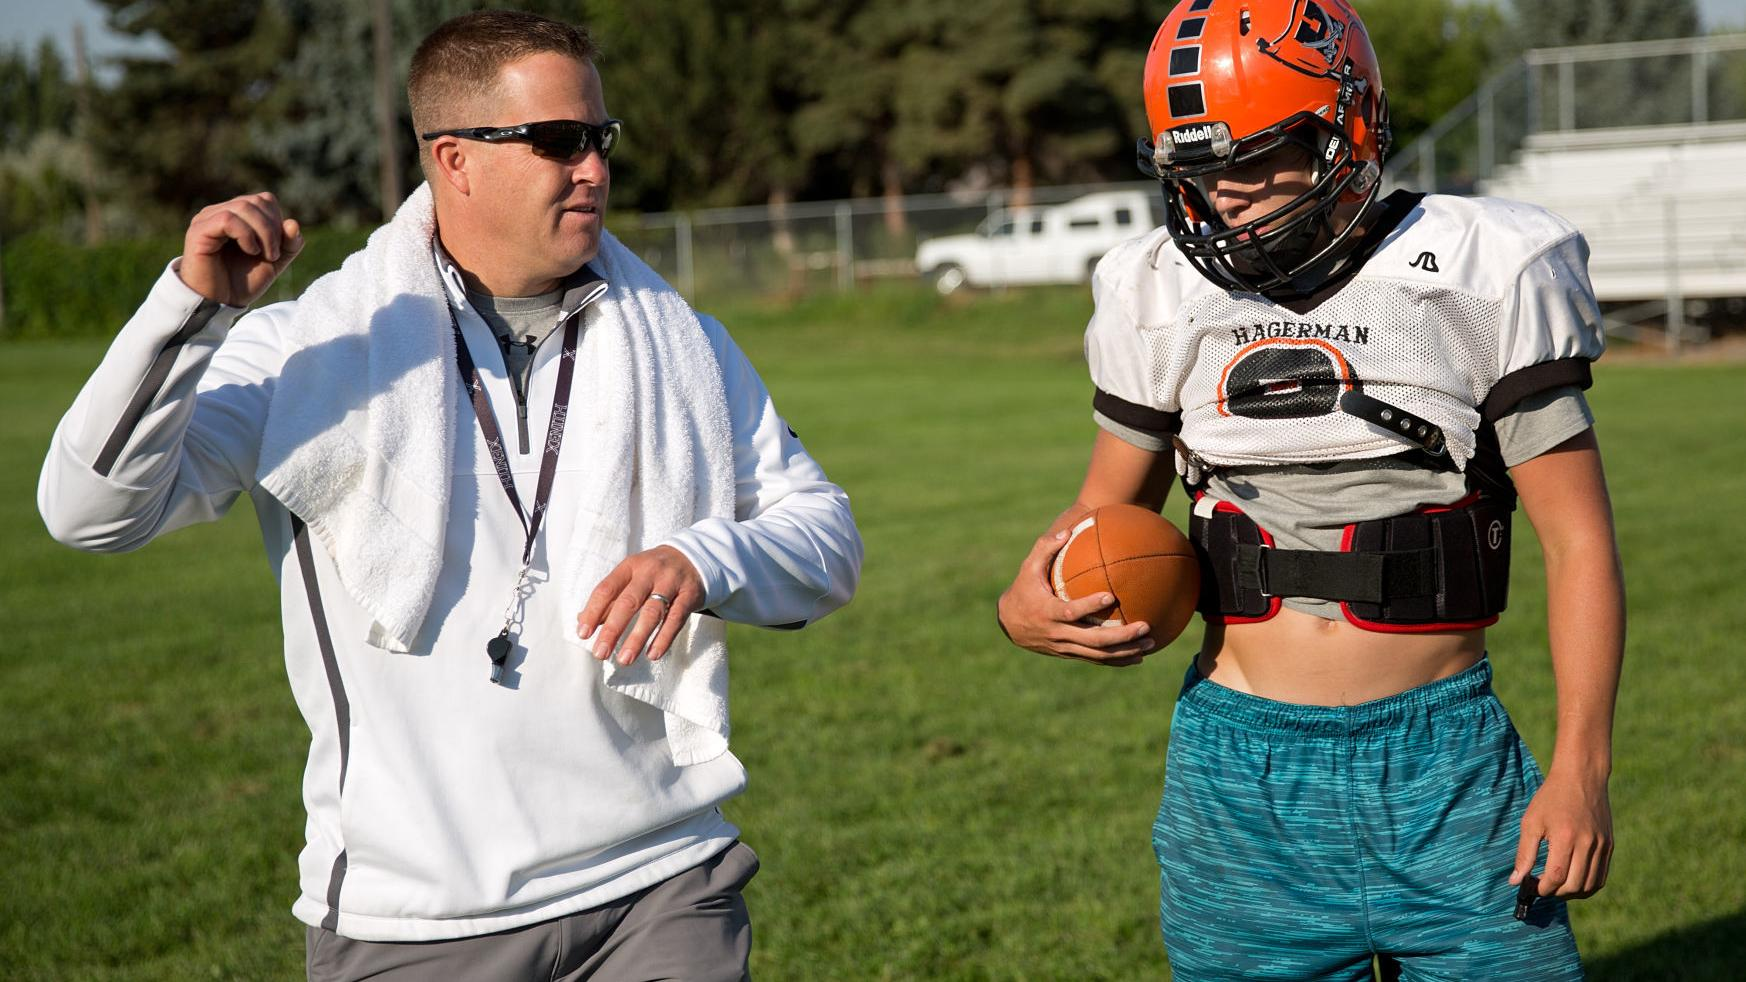 Several District 4 high schools make coaching changes